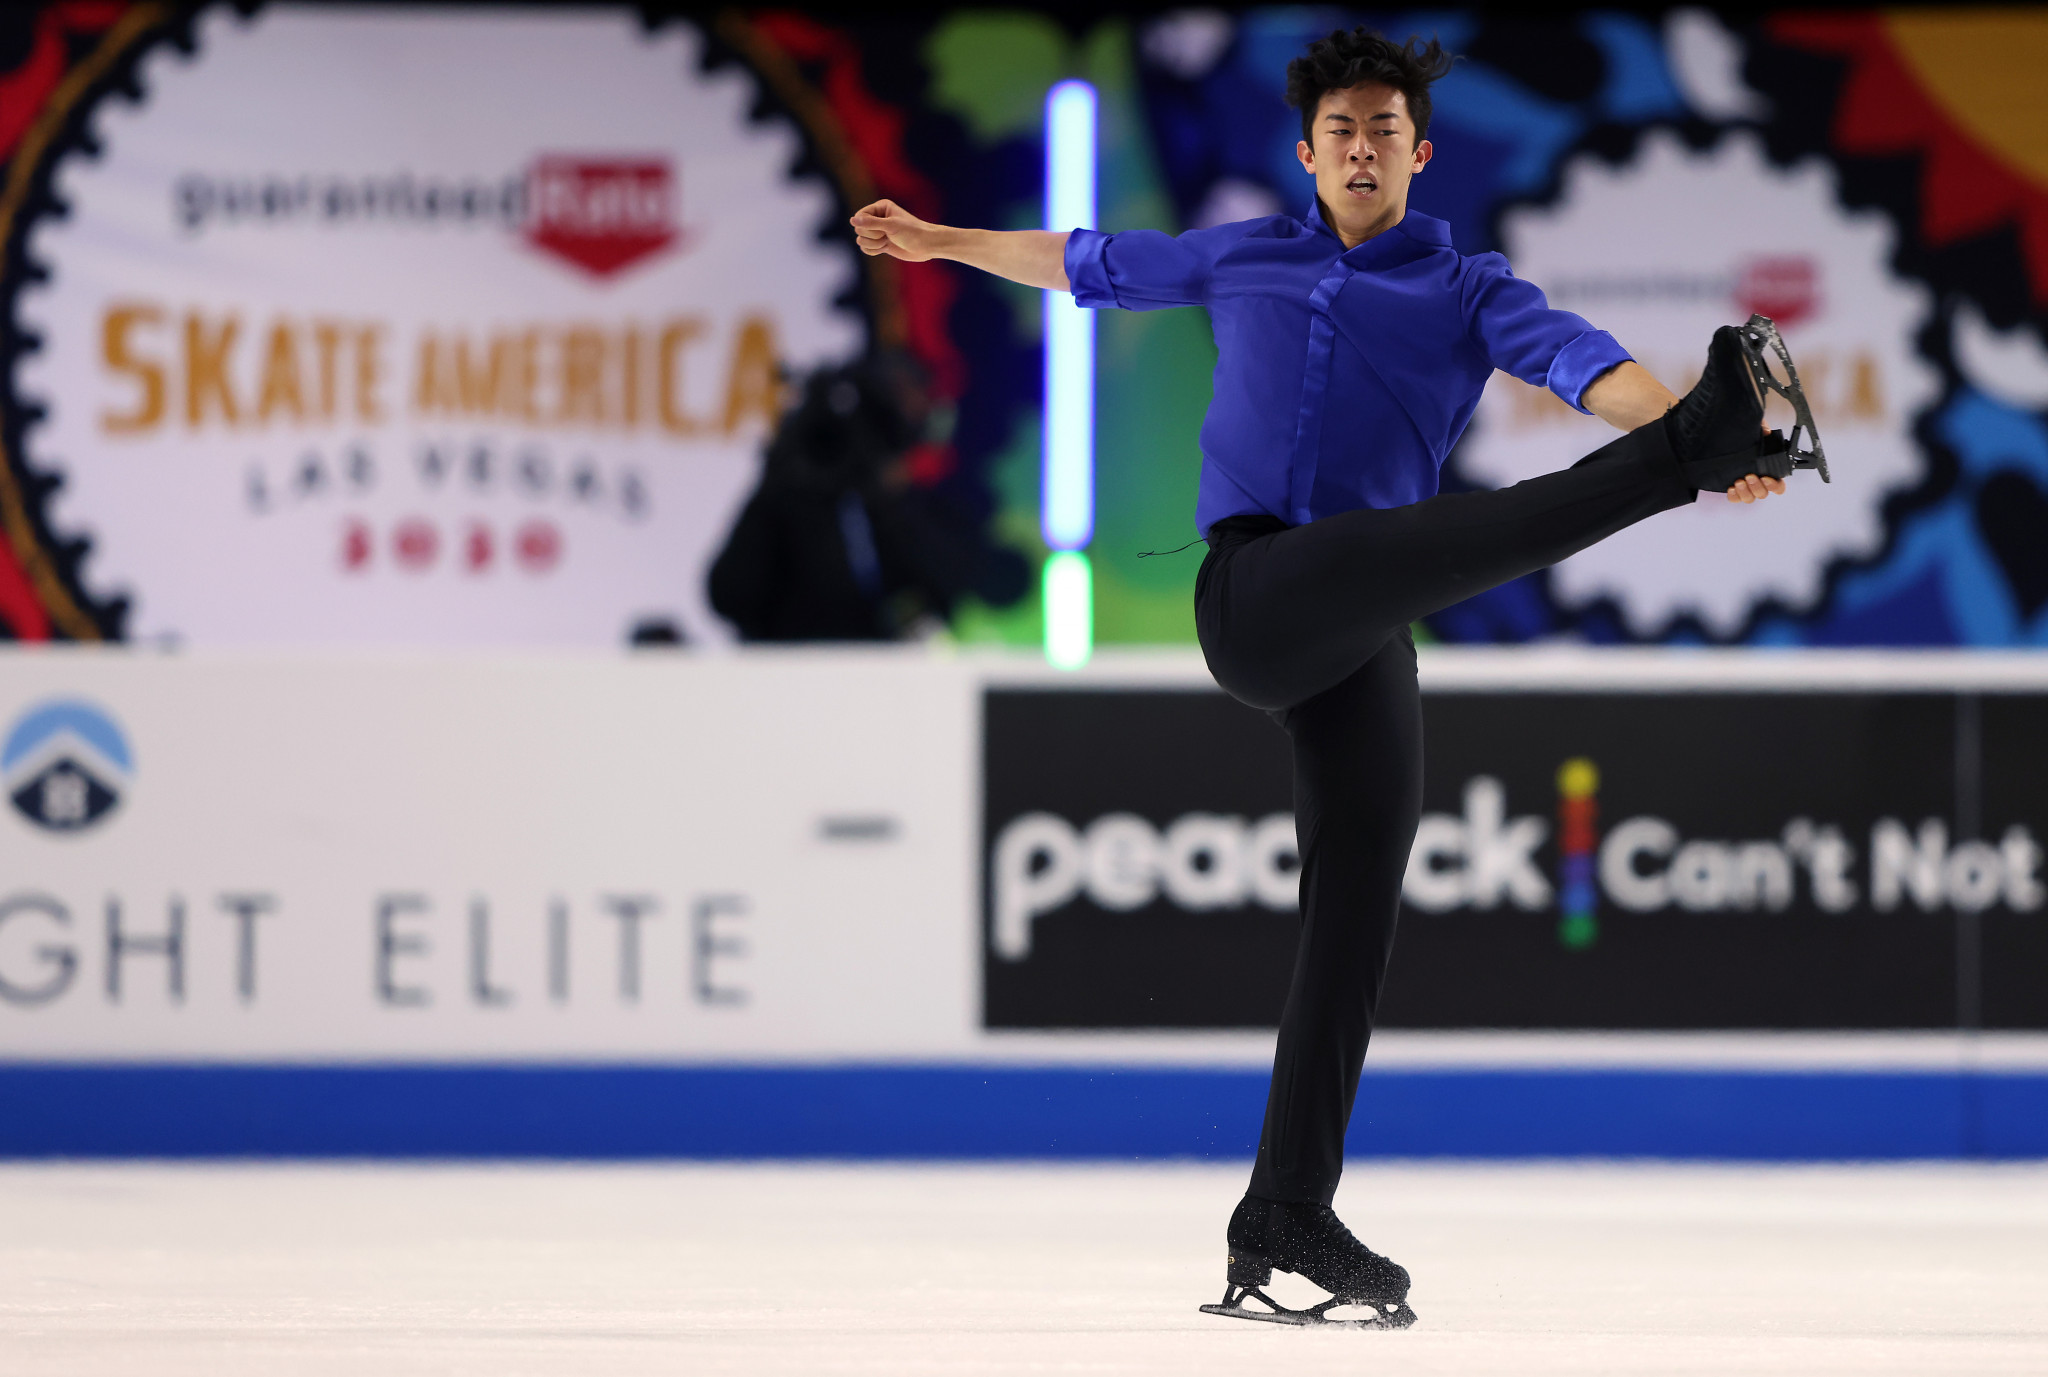 Chen predicts quintuple jump attempts in figure skating